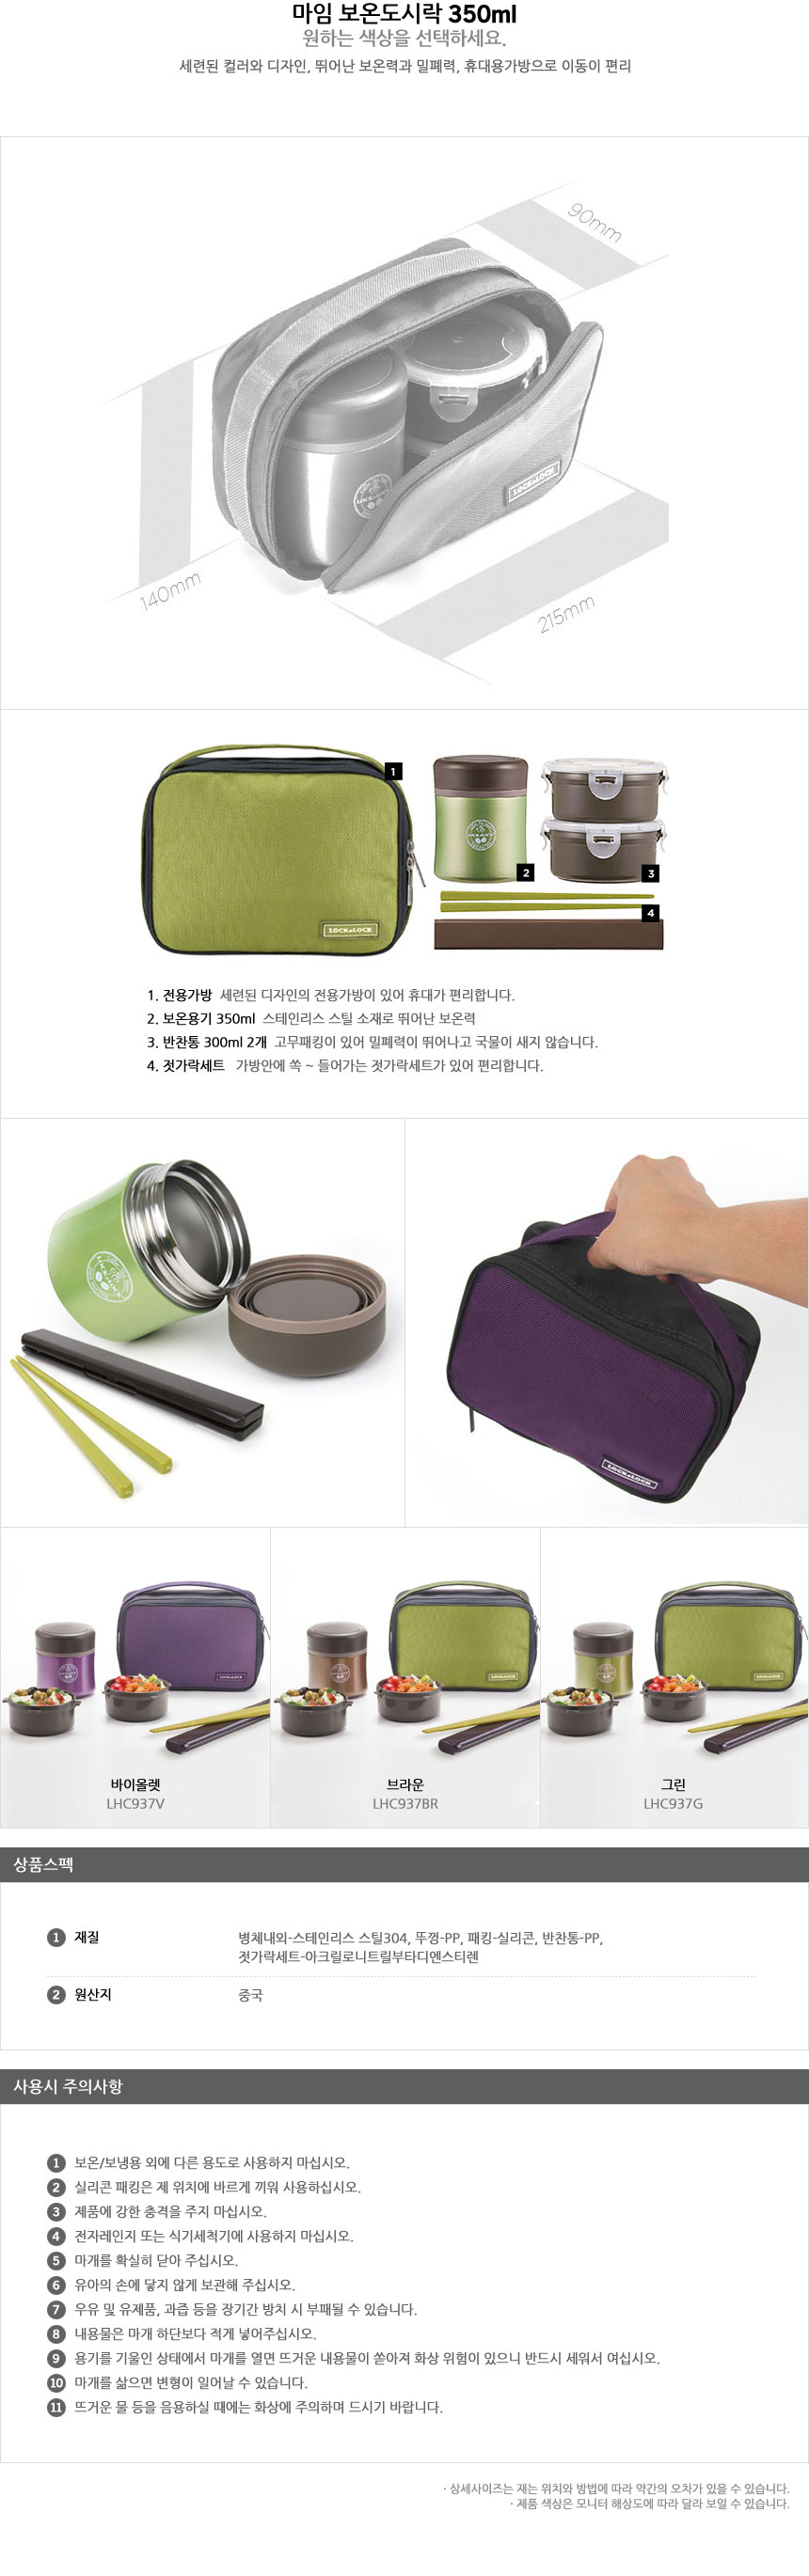 Locklock Hot And Cool Vivid Lunch Box 400ml Lhc3070 11street Seasoning Case Liquid 300ml Hte310 Seller Information